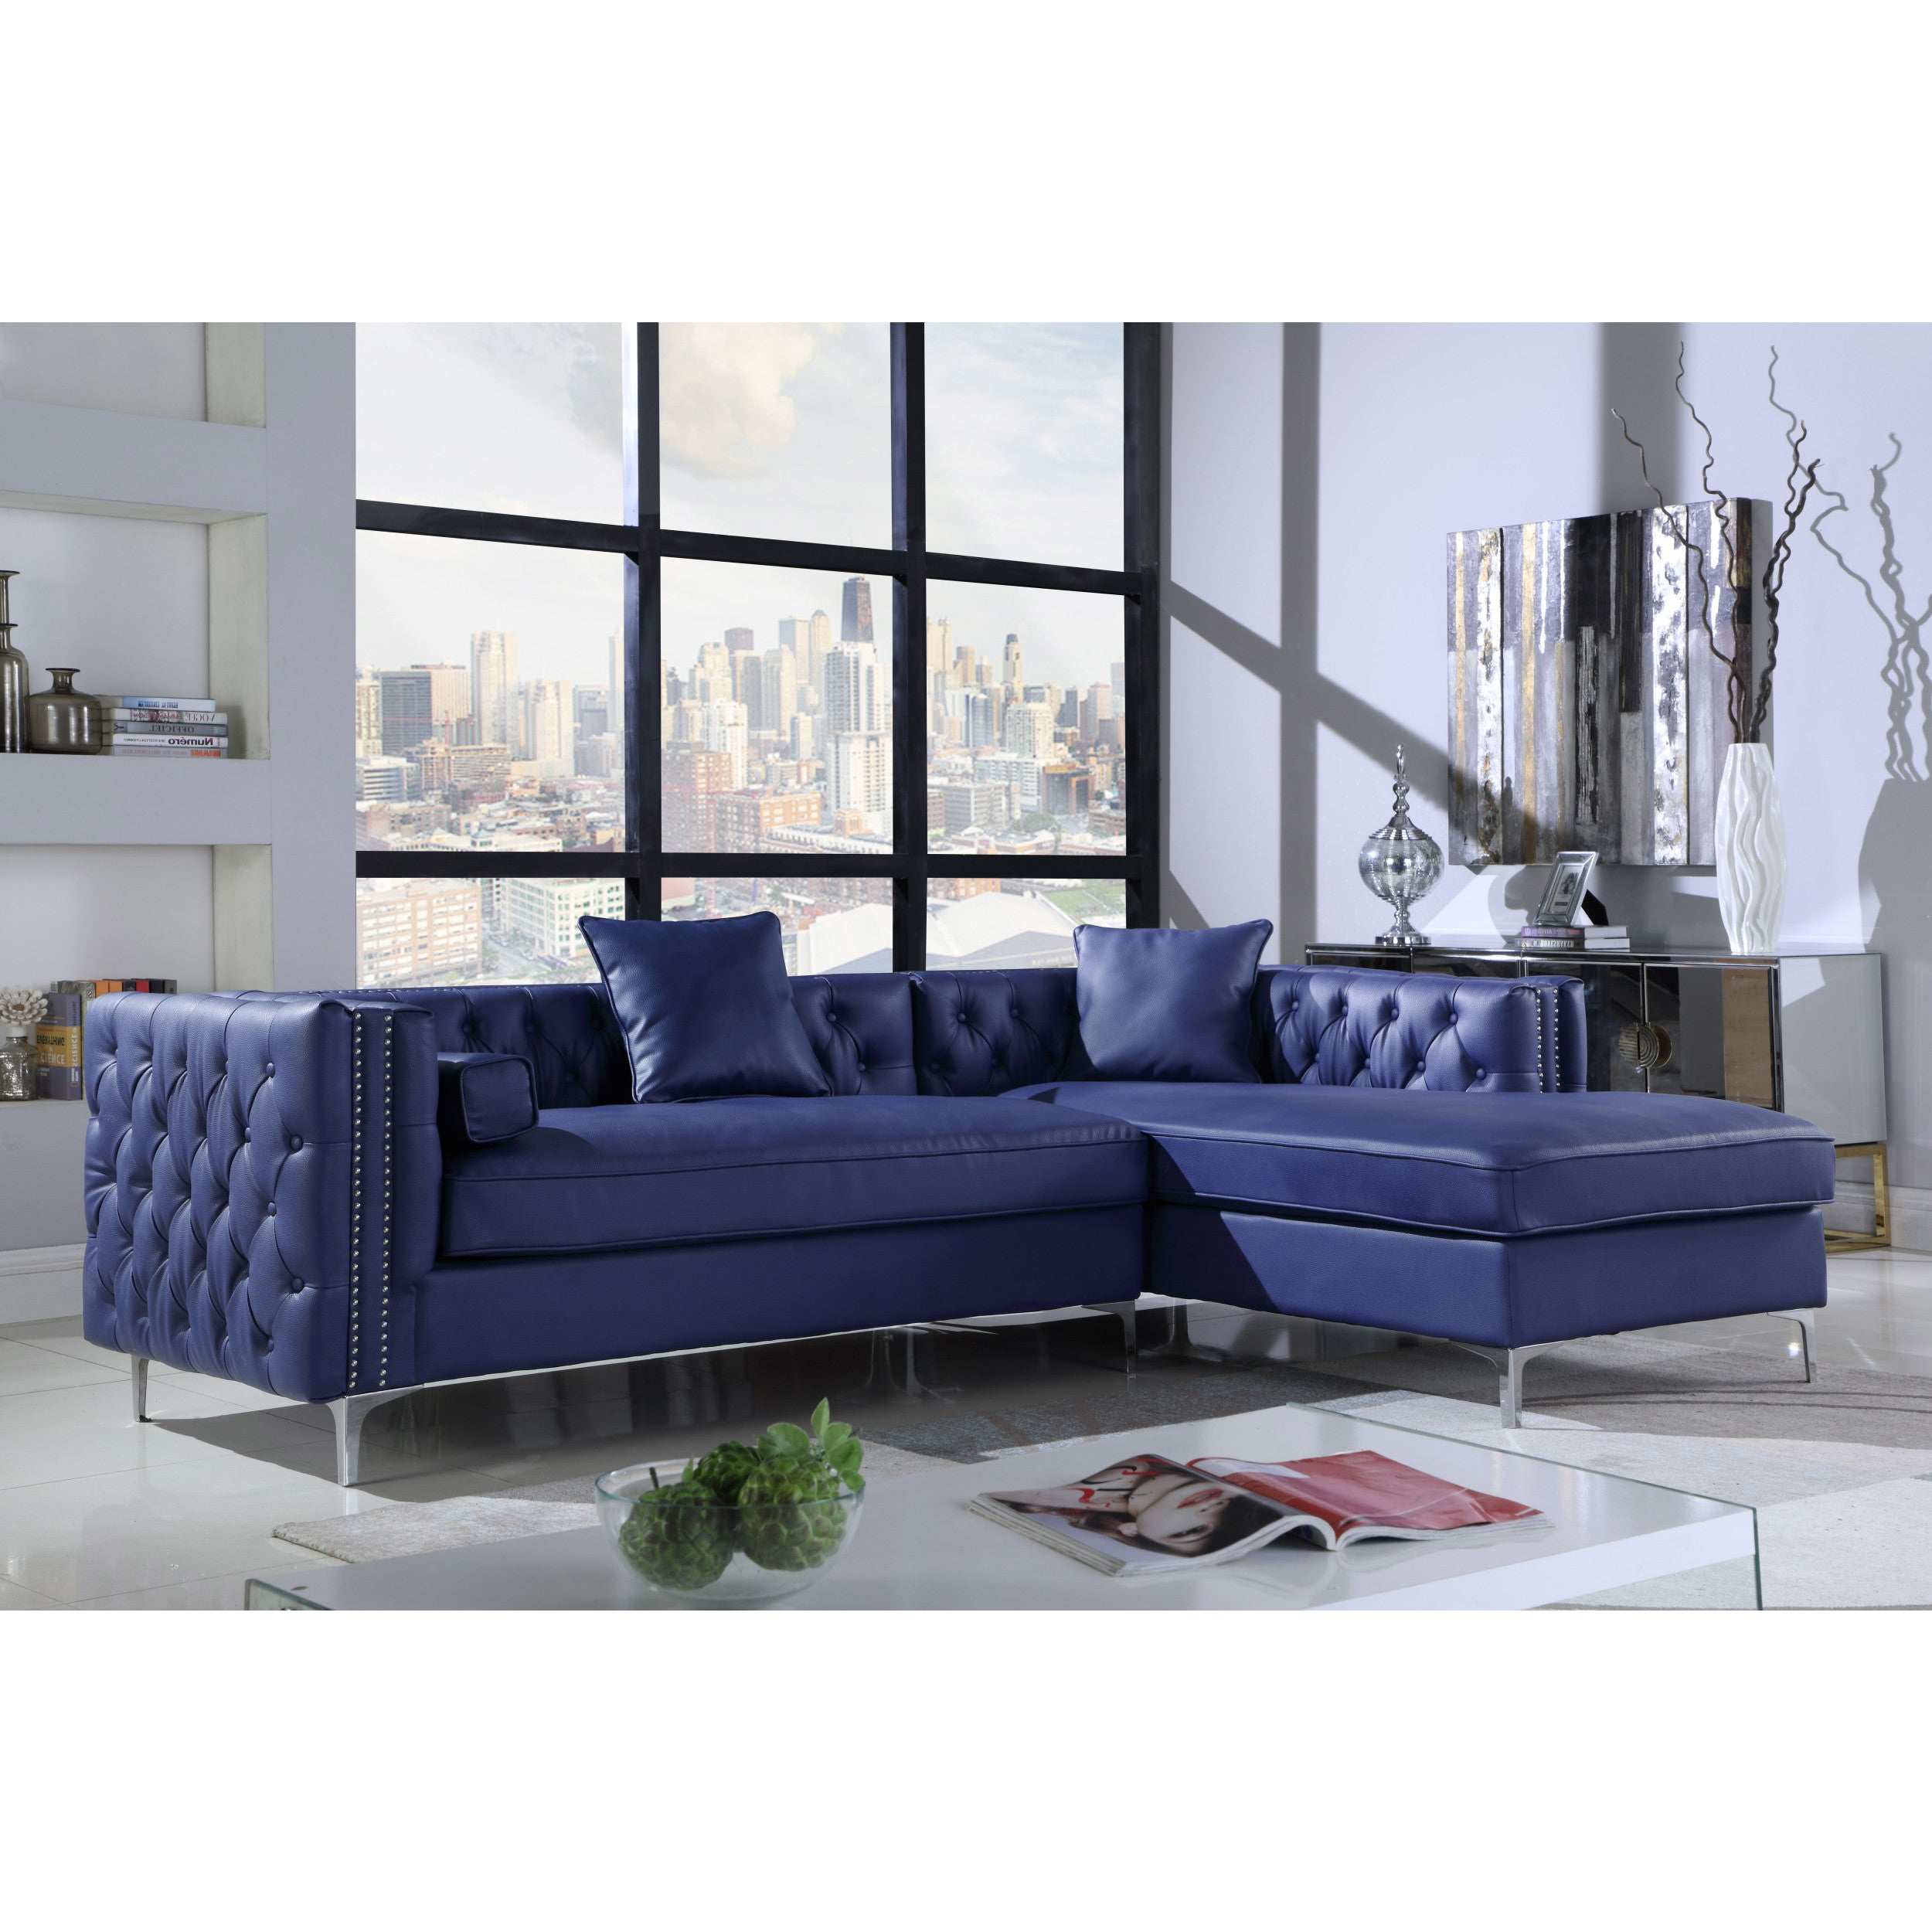 Chic home monet pu leather modern contemporary button tufted with silver nailhead trim right facing sectional sofa